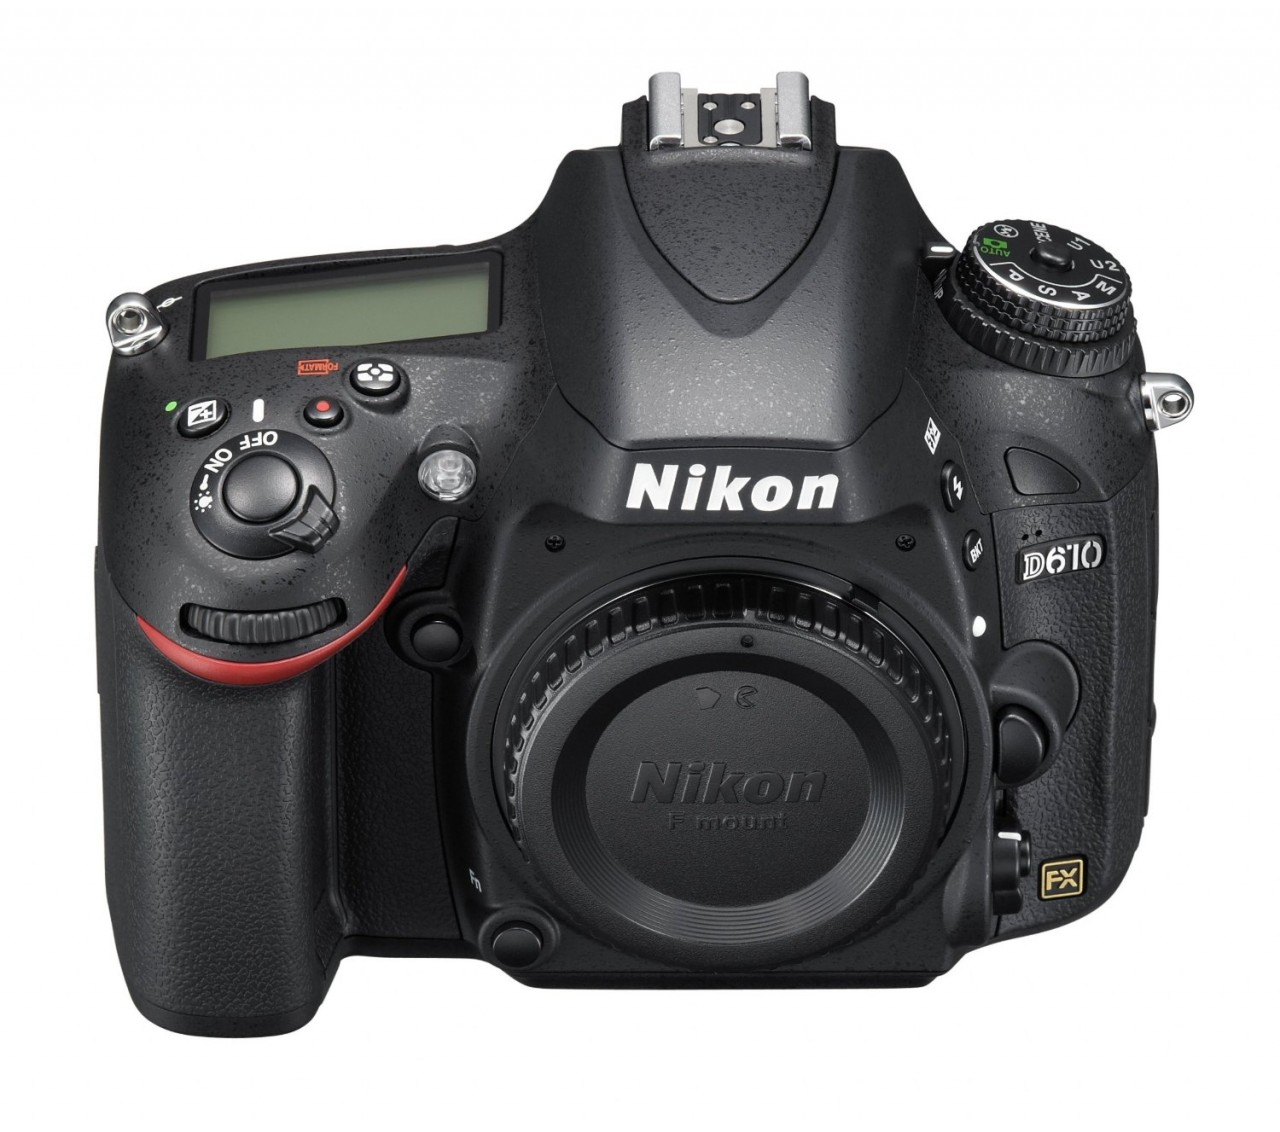 I purchased the after seeing a HSN demo on the camera. First, I must be honest by stating I am a retired journalist who shot her own photos, and a long time Nikon owner and more recently a digital Canon SLR owner.